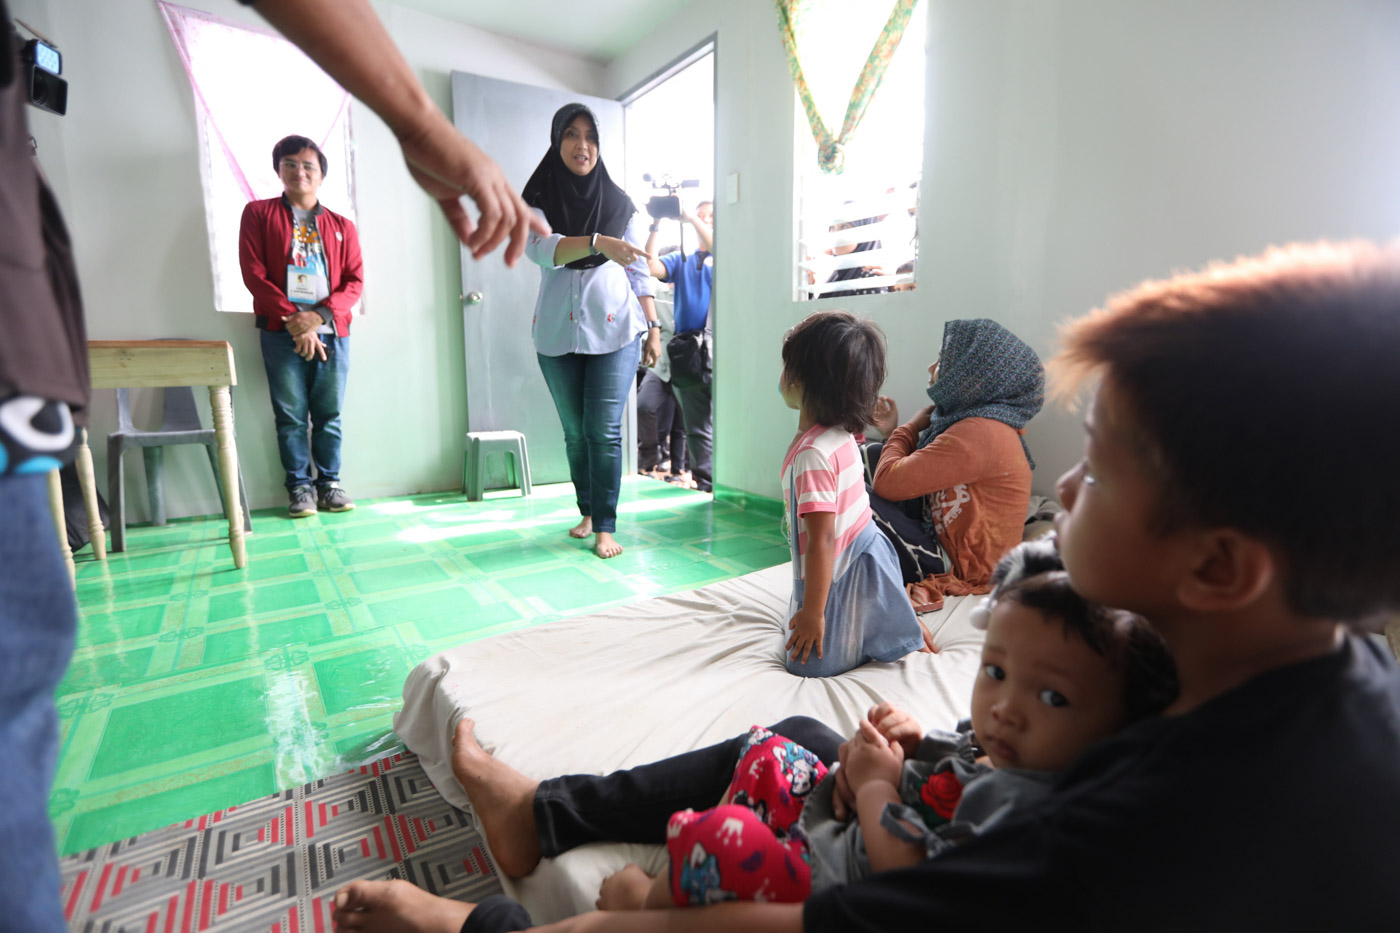 SHELTER INSPECTION. Vice President Leni Robredo checks on a family in the new transition shelter village in Marawi City. Photo from OVP